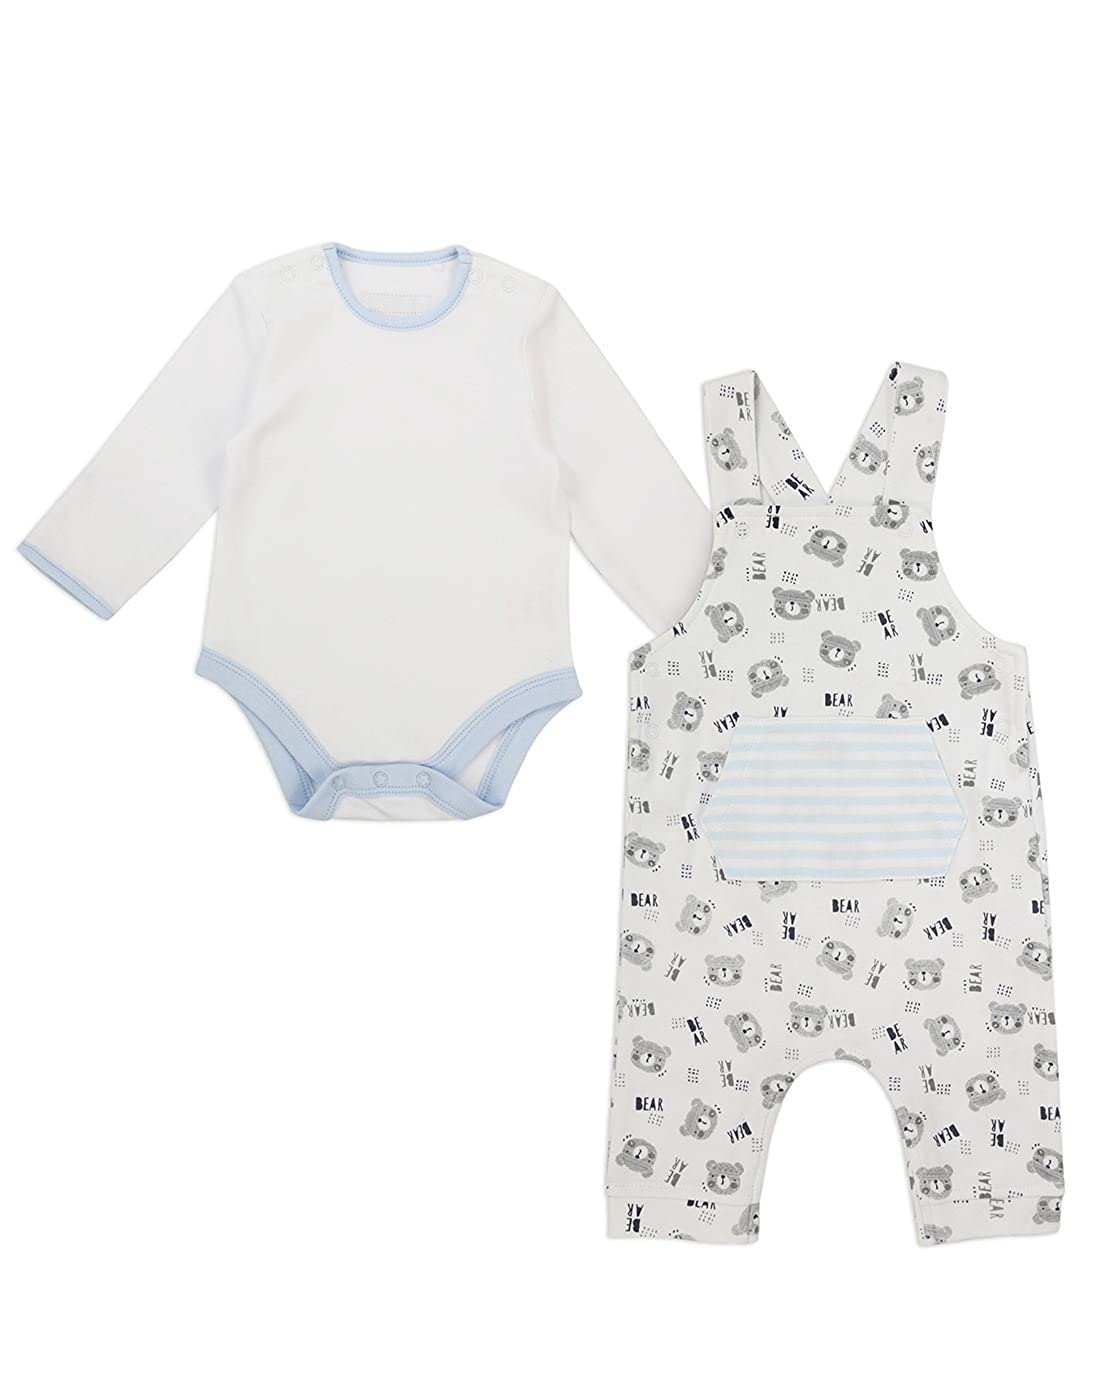 The Essential One Baby Boys Tiny Bear Dungaree and Body Set - White/Blue - TESS16